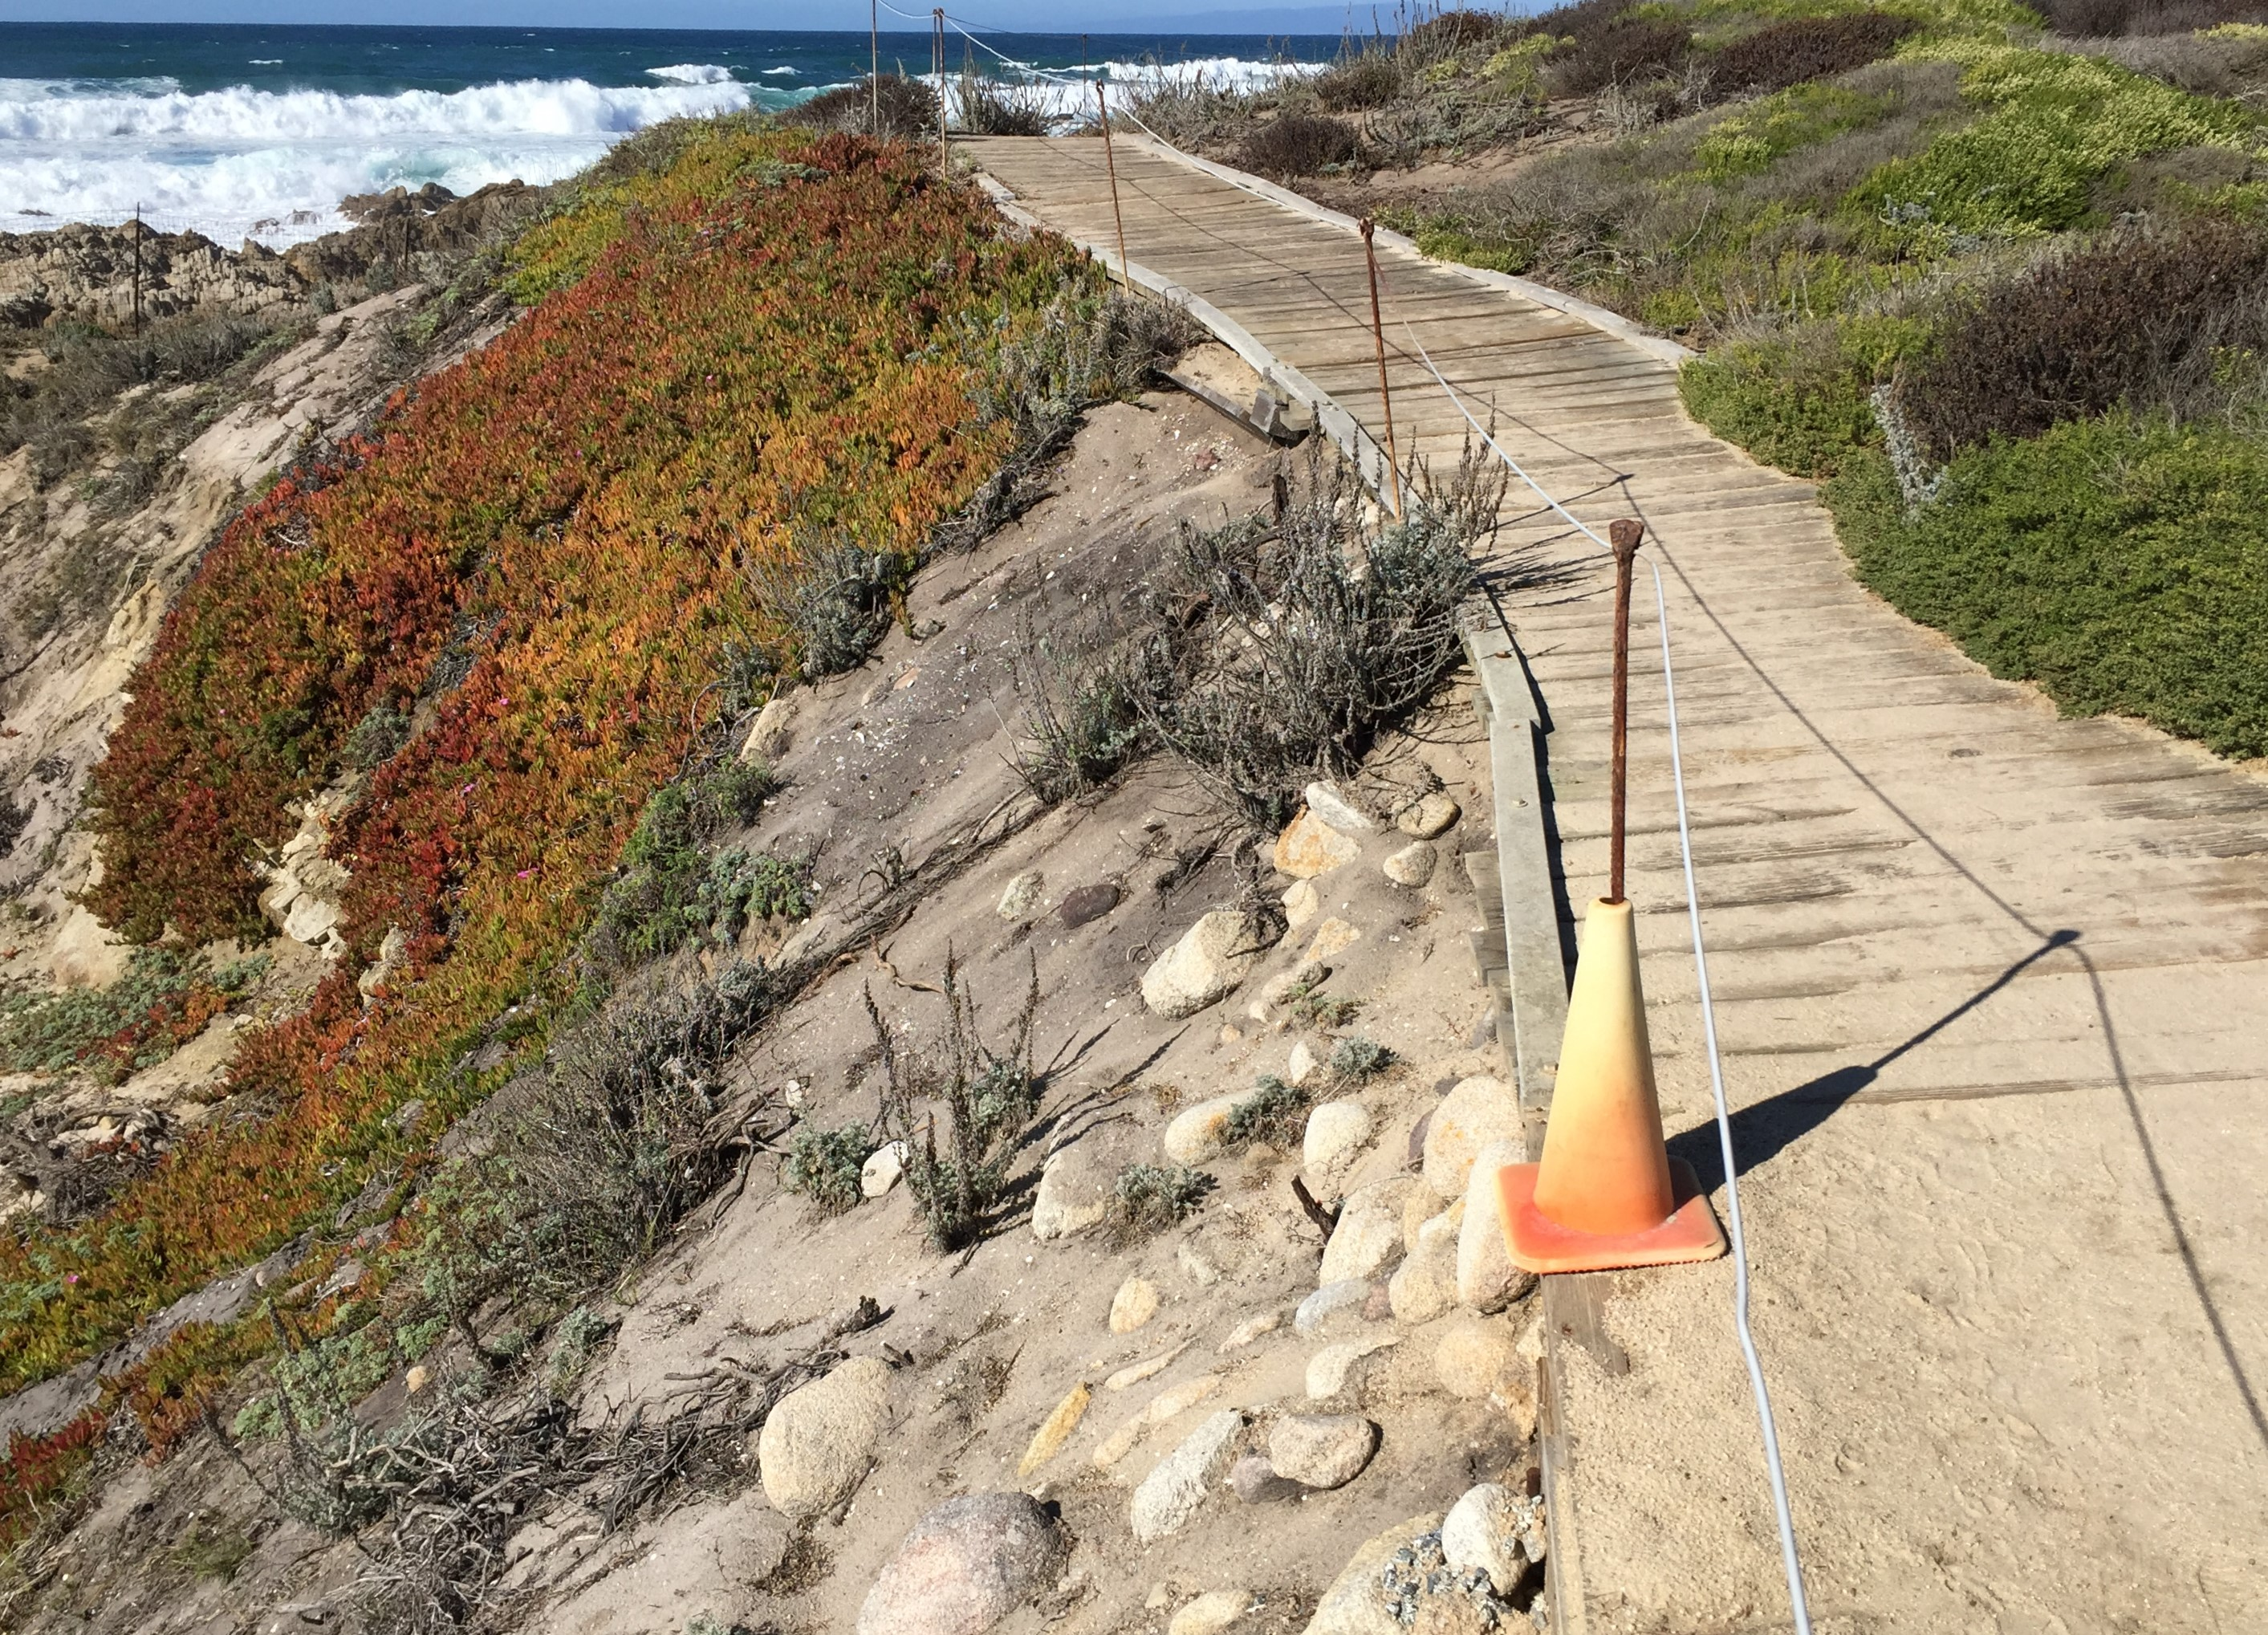 Current boardwalk section with erosion